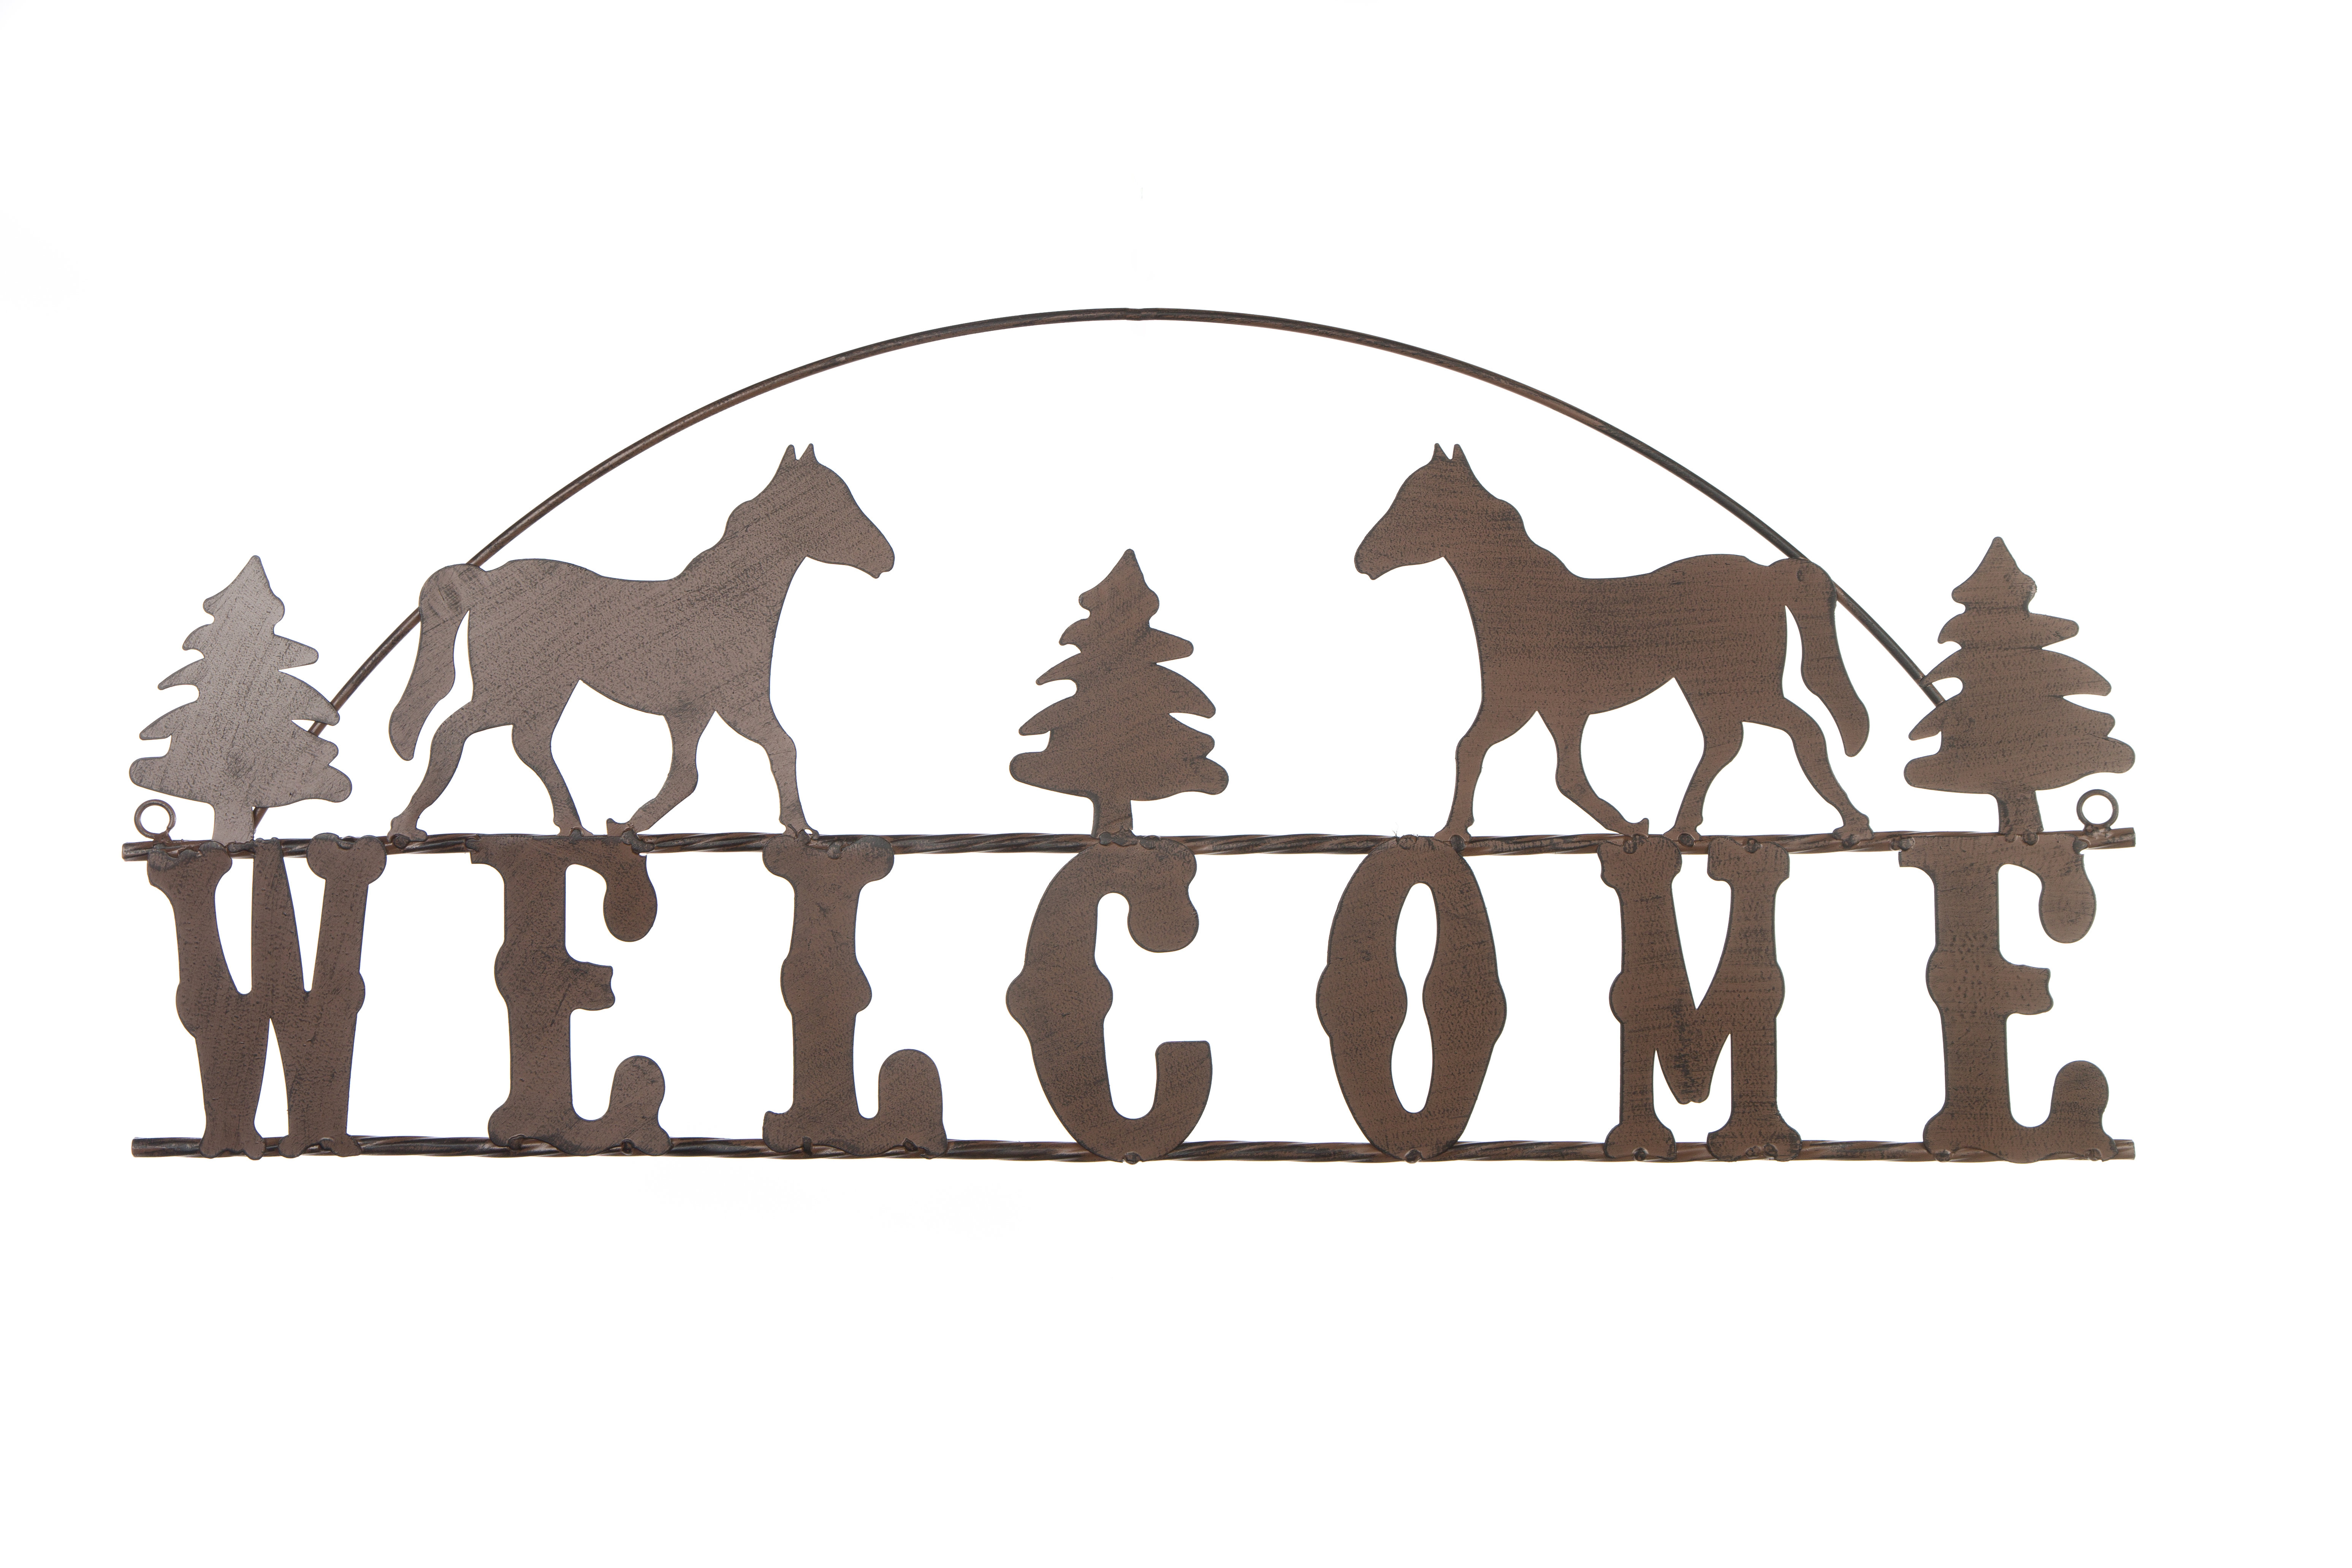 Welcome Sign Wall Décor pertaining to Tree Welcome Sign Wall Decor (Image 22 of 30)